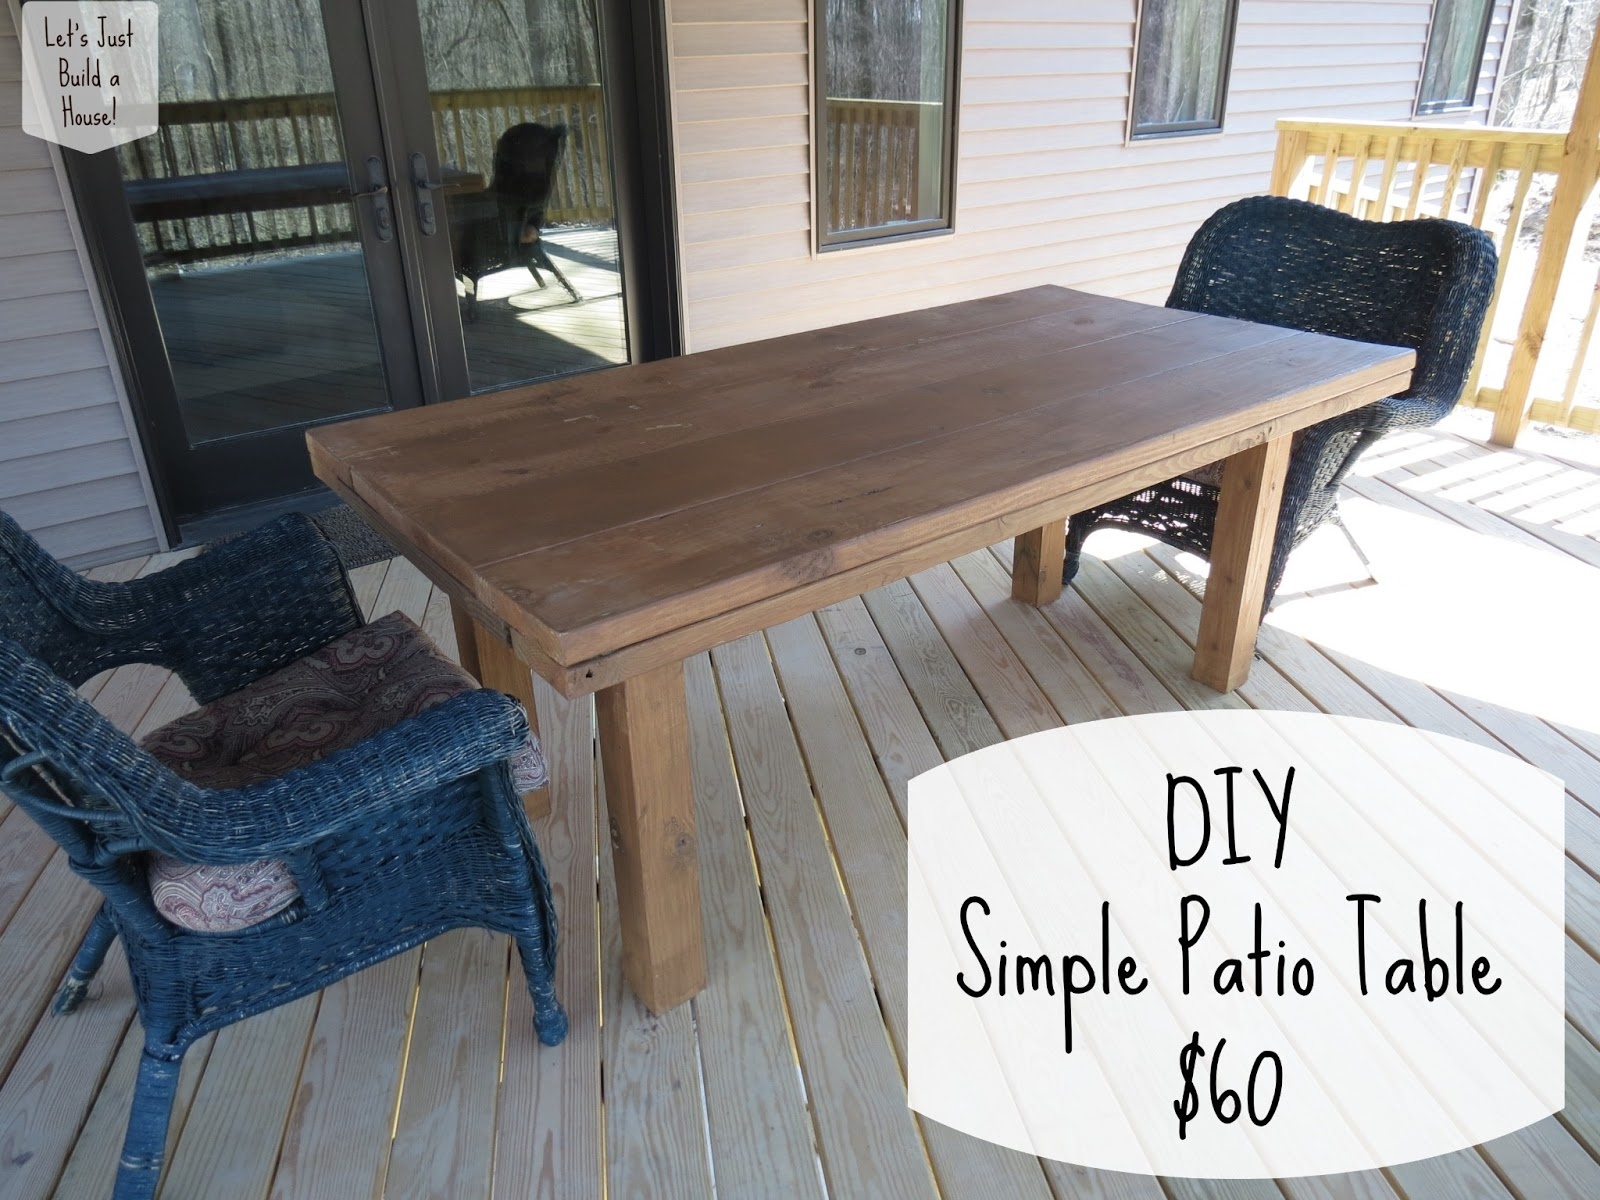 Let 39 s just build a house diy simple patio table details for Diy garden table designs